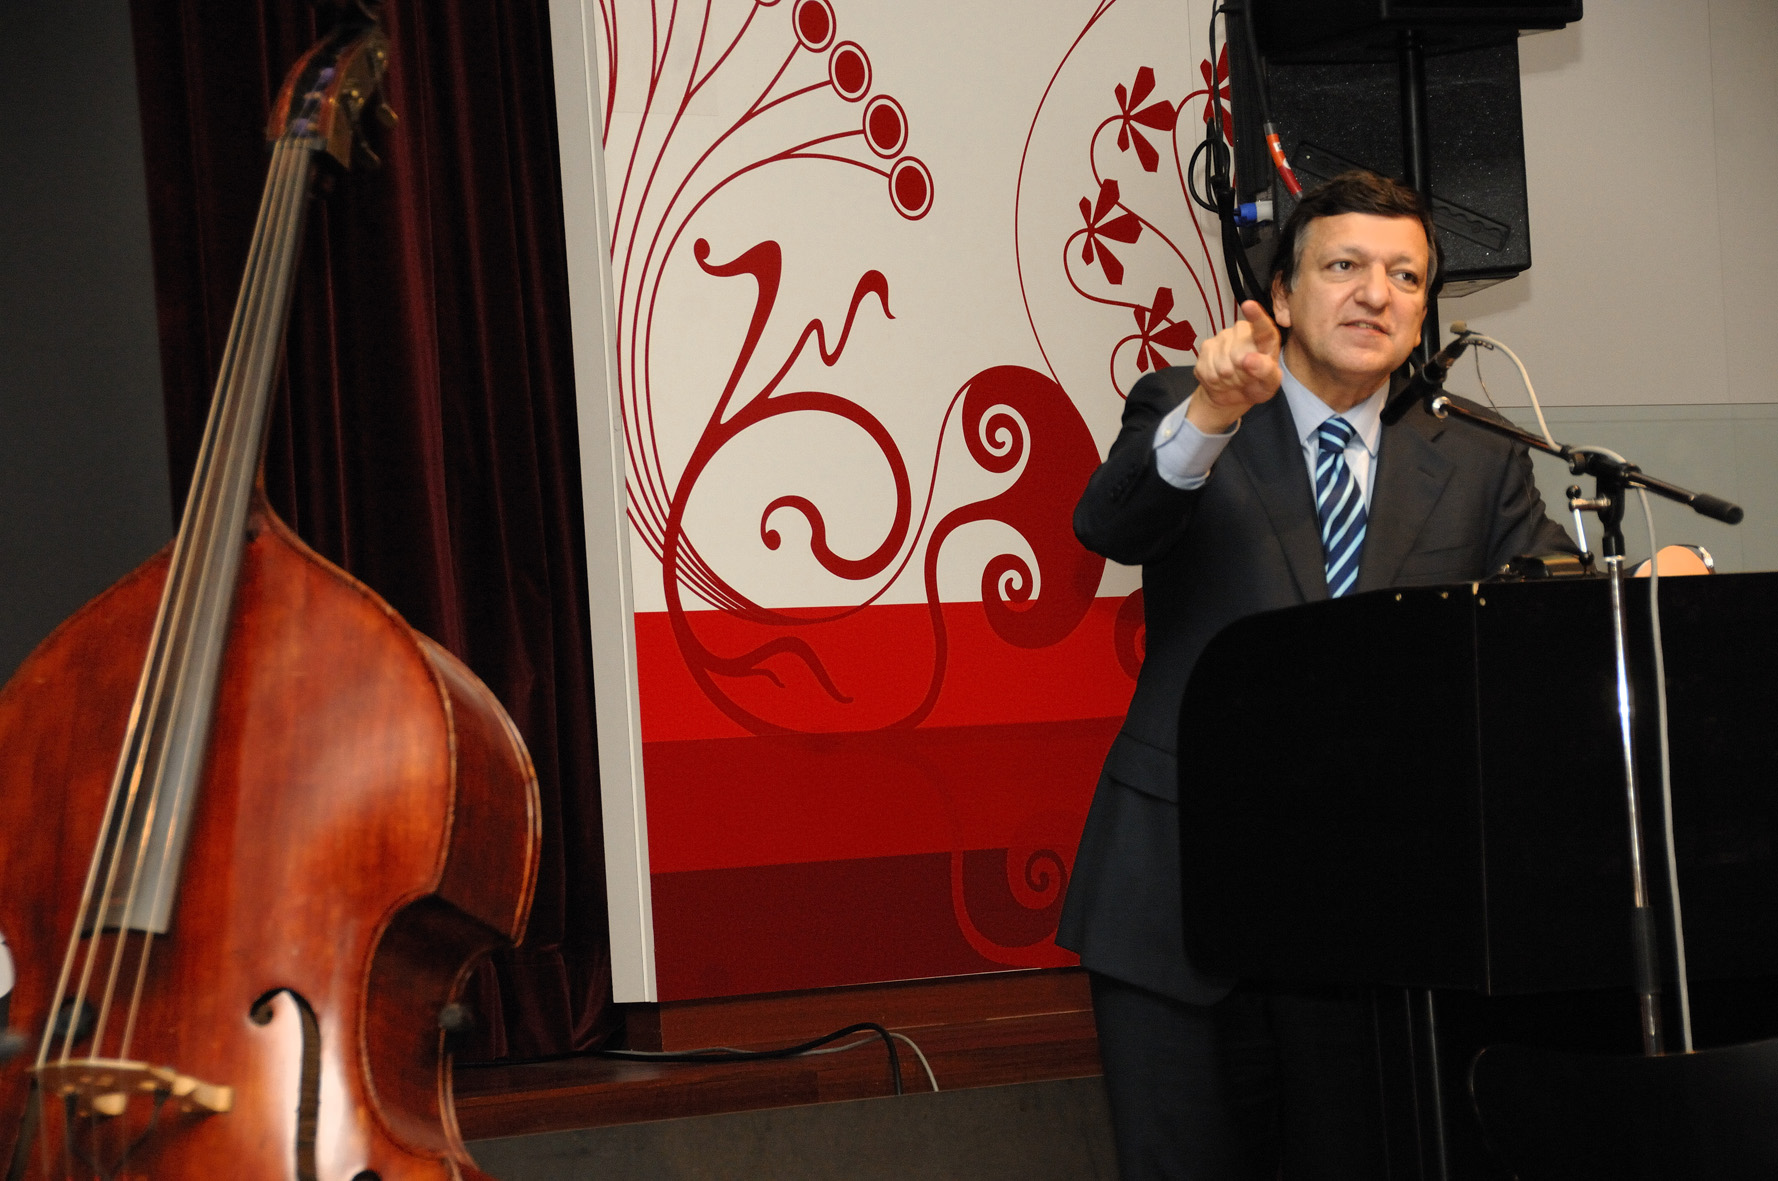 Participation of José Manuel Barroso, President of the EC, in the A Union with Results through cultural diversity conference